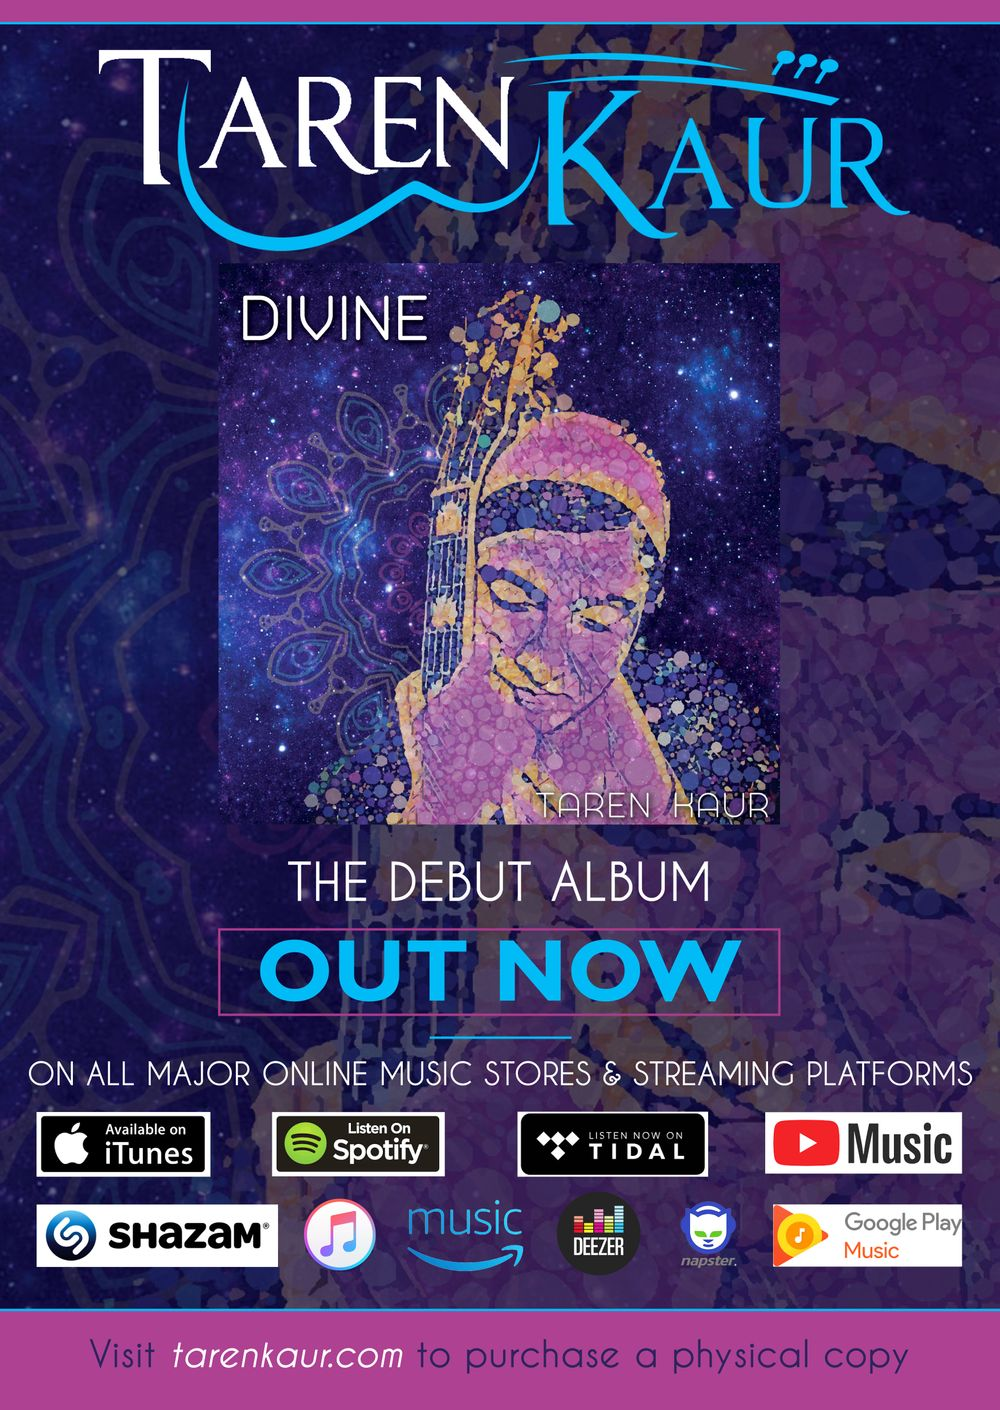 he Debut Album by Taren Kaur